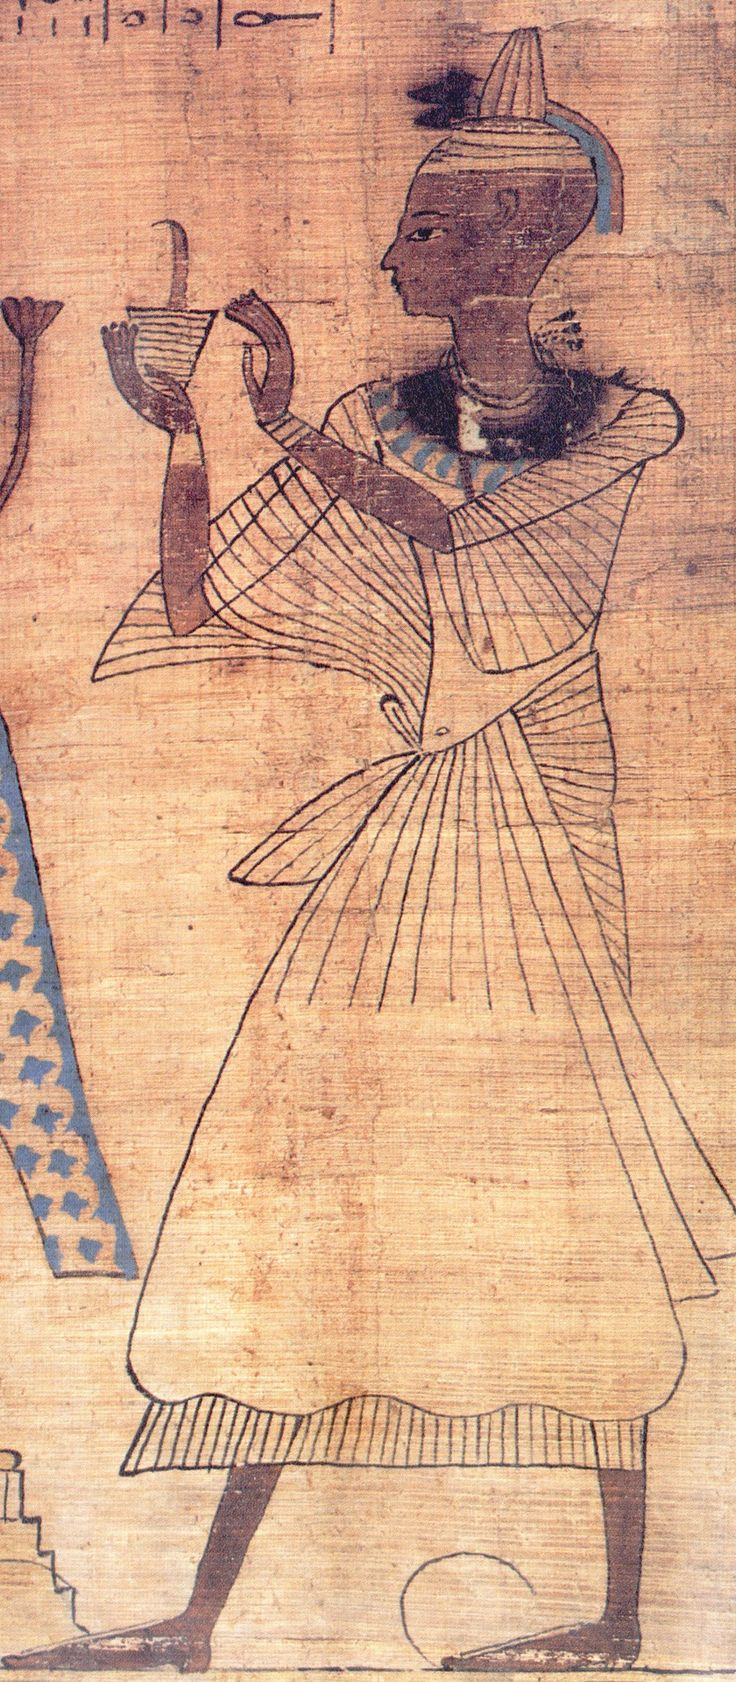 Ancient Egyptian Vignette from the Book of the Dead Penmaat. Penmaat is depicted in his position as a priest of Amun, burning incense and showing the shaved head that was required for priestly purity.  Courtesy & currently located at the British Museum, London.